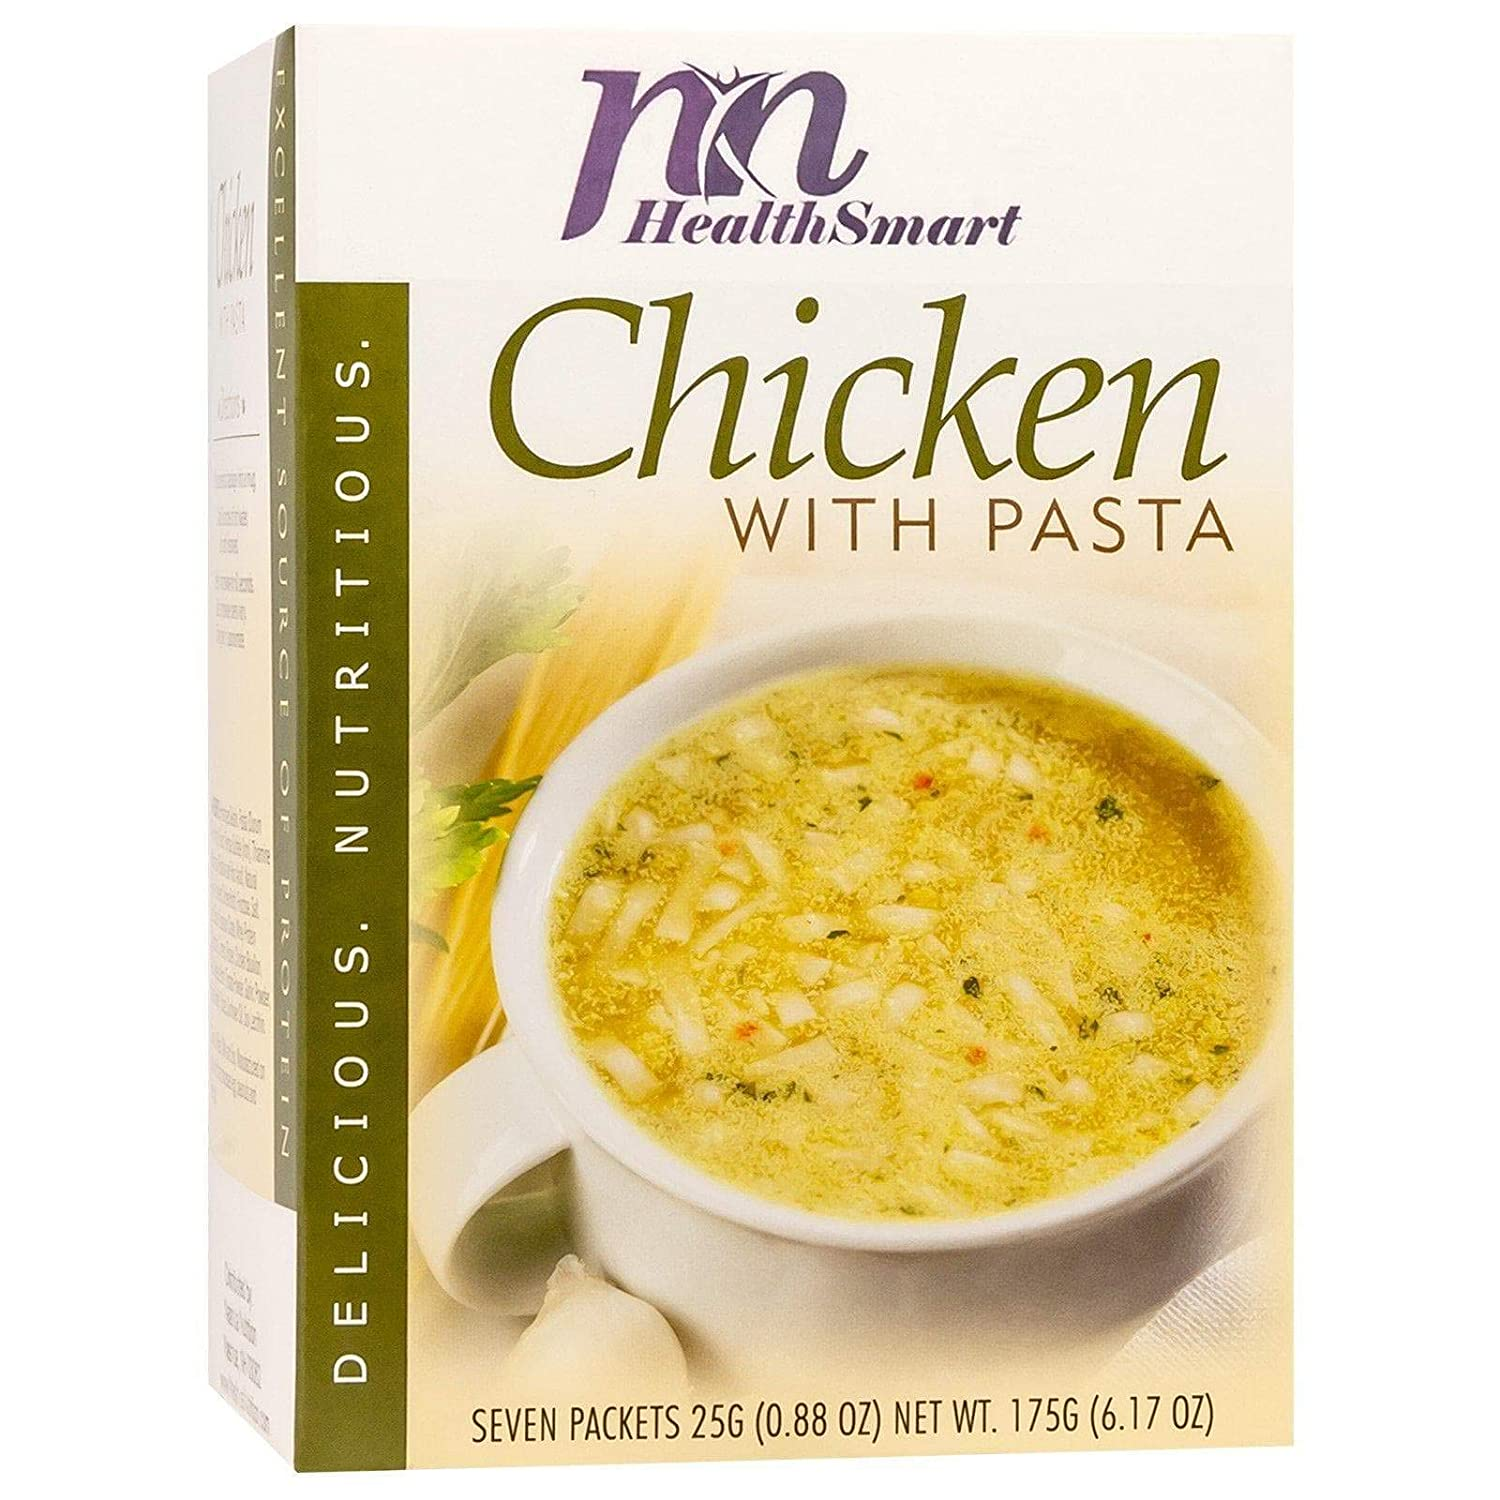 HealthSmart High Protein Chicken with Pasta Soup, 15g Protein, Low Calorie, Low Carb, Low Sugar, Low Fat, KETO Diet Friendly, Ideal Protein Compatible, 7 Count Box